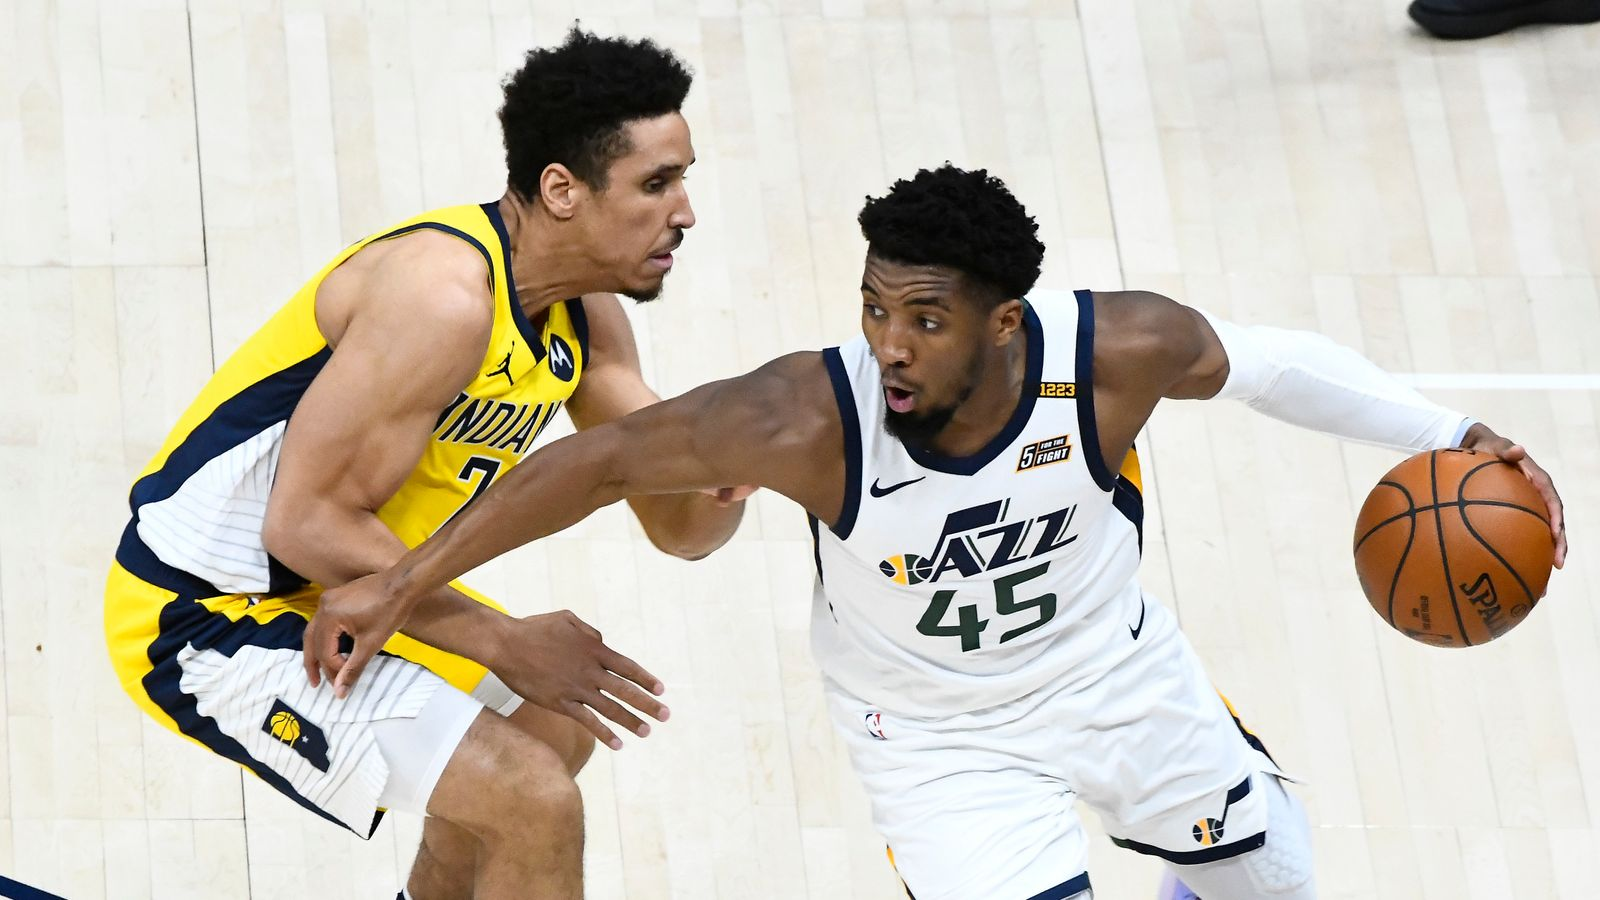 Utah Jazz lose Donovan Mitchell through injury in third quarter, rally to top Indiana Pacers